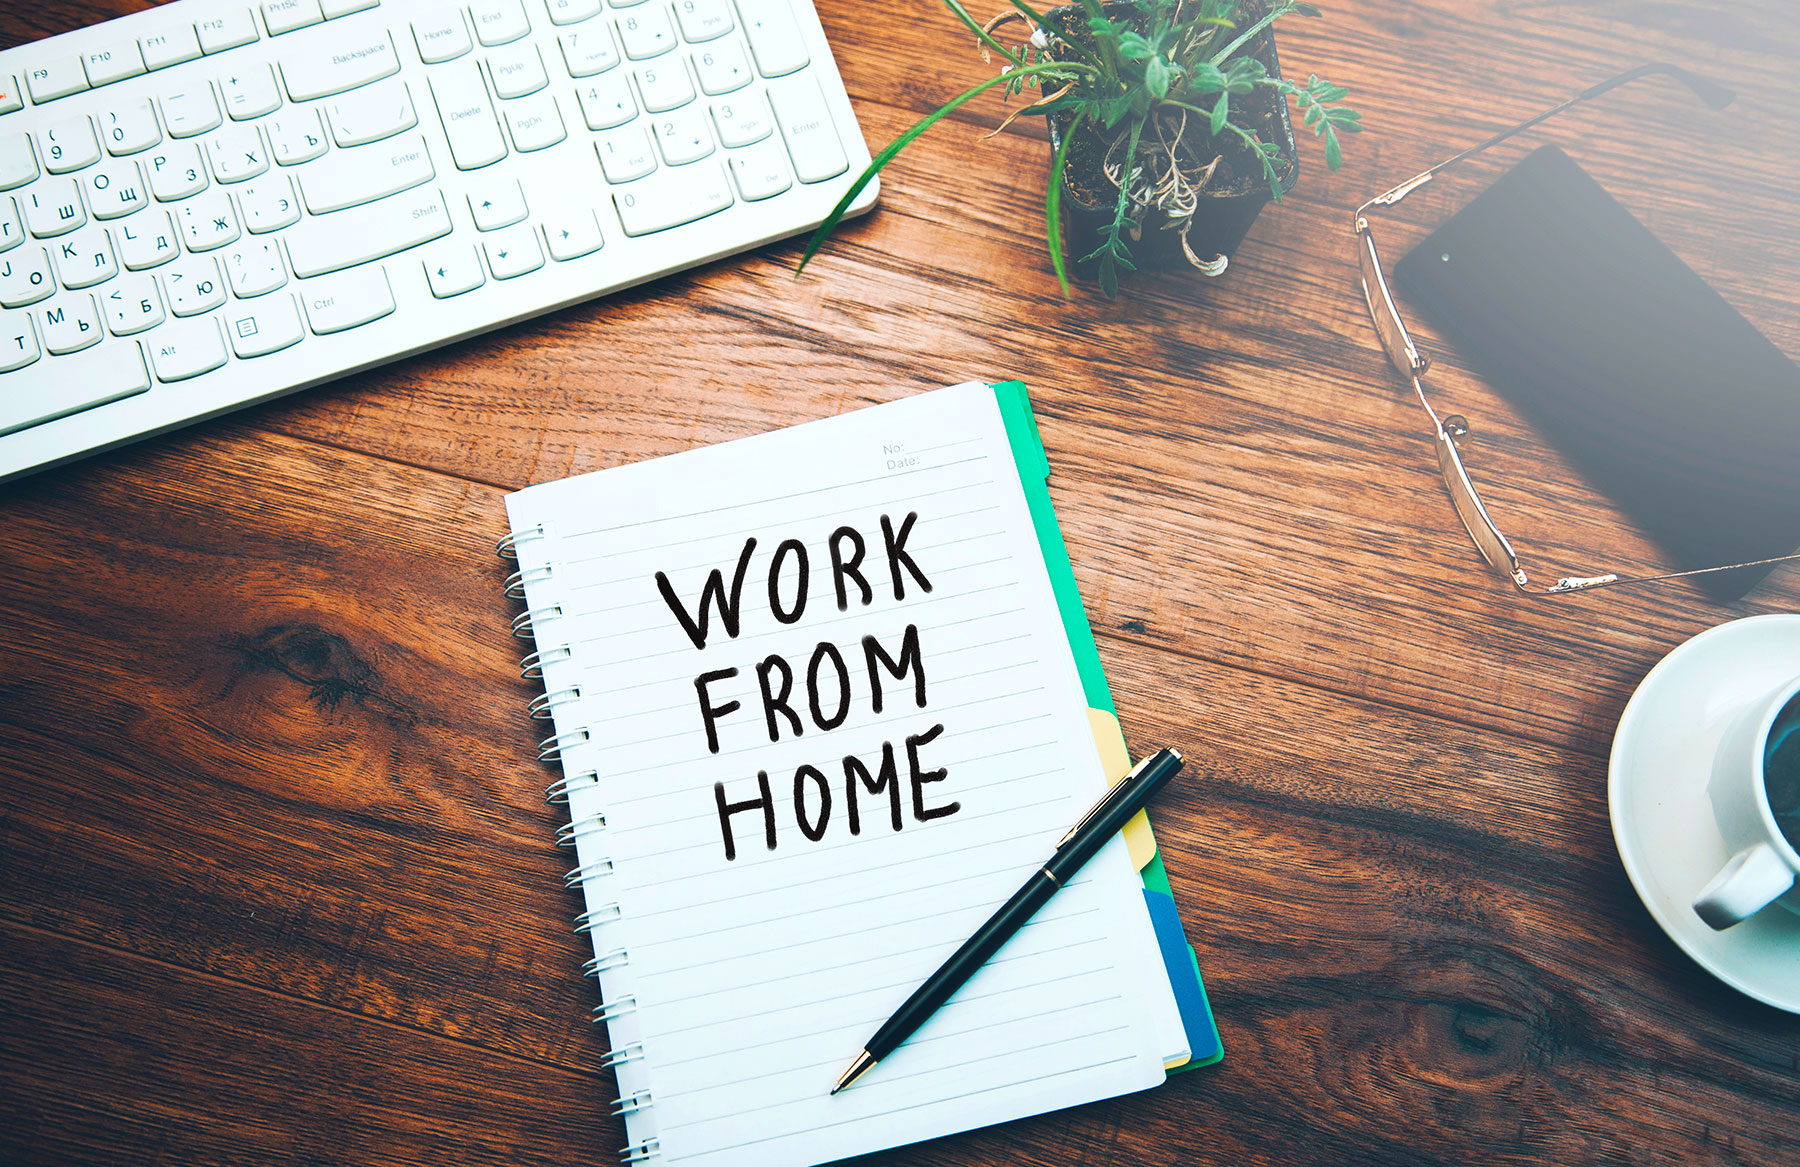 8 Work From Home Tips to Reduce Stress